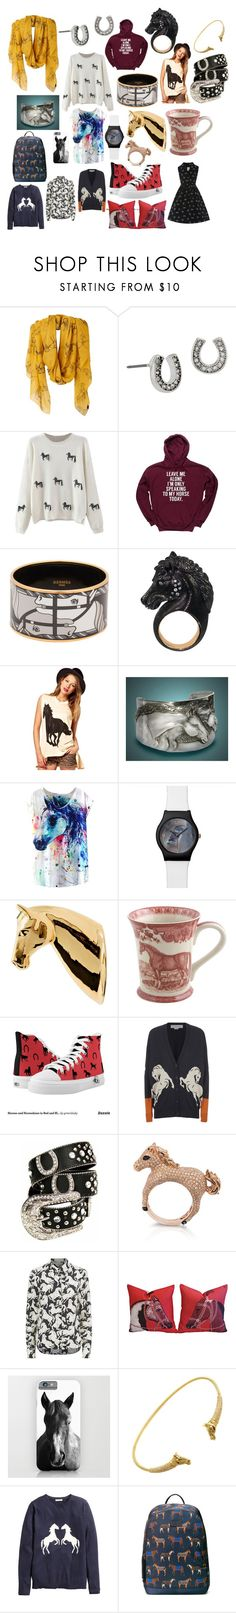 """""""Haute Horse"""" by kawaiiqueen3 ❤ liked on Polyvore featuring Joules, Betsey Johnson, Hermès, Bosa, STELLA McCARTNEY, Effy Jewelry, H&M and Gucci"""